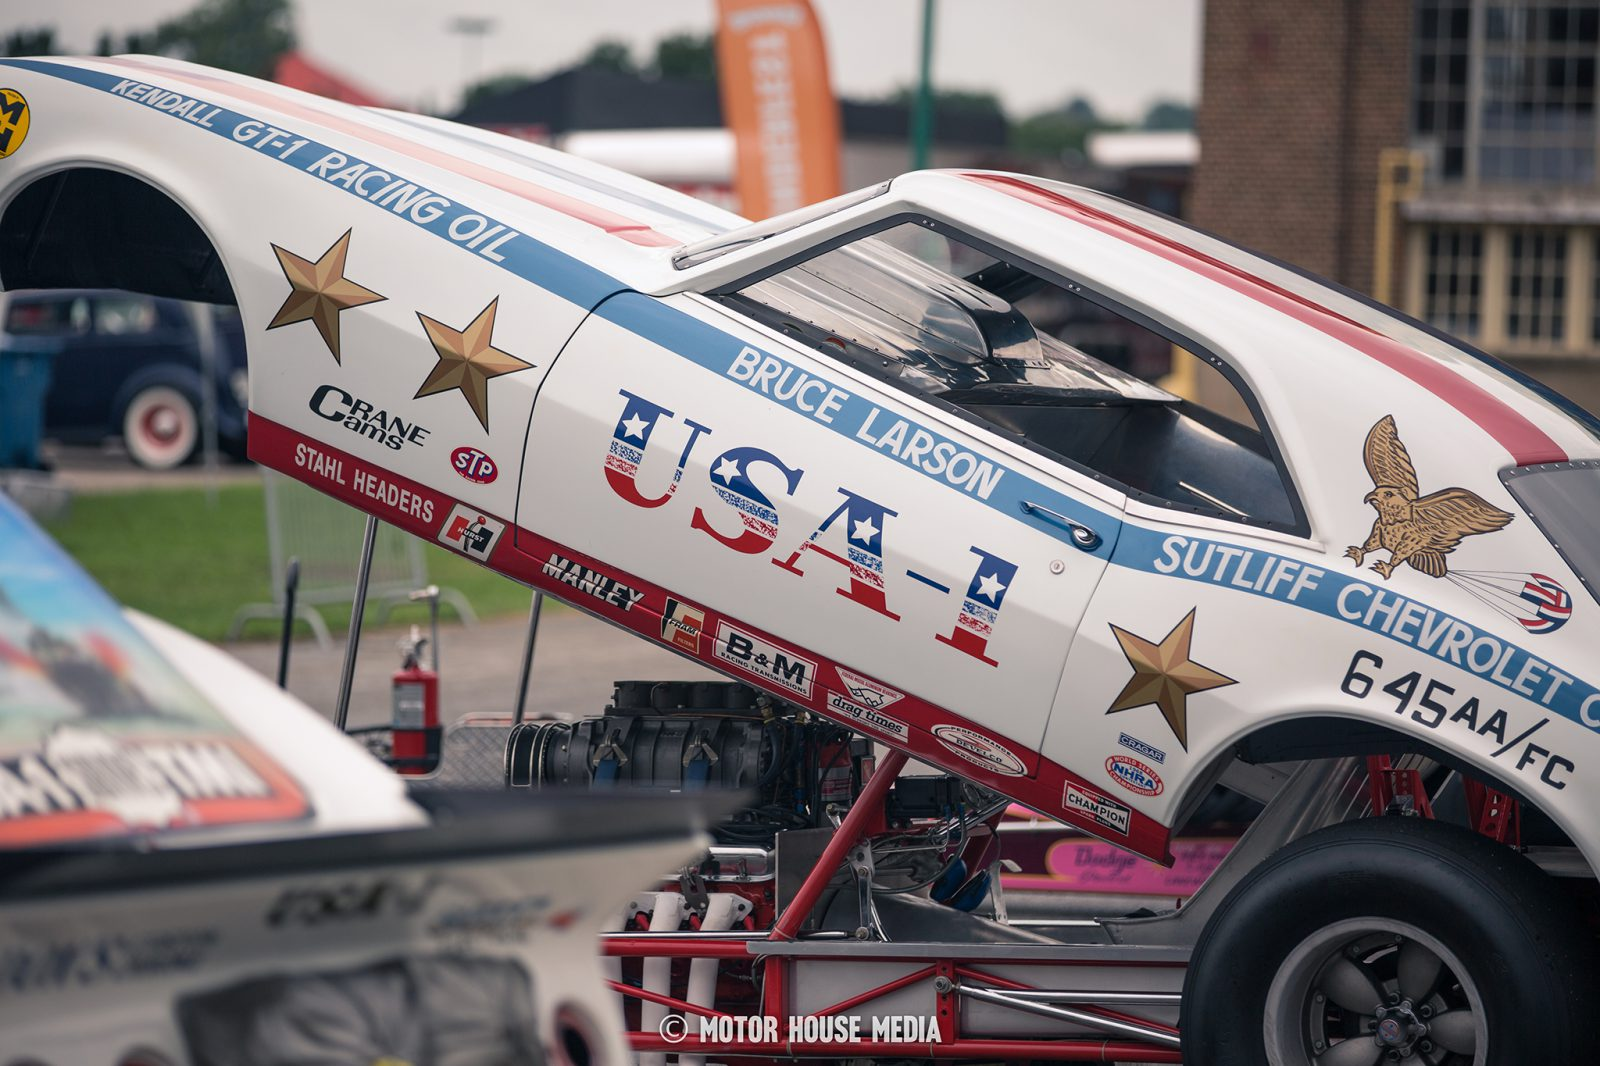 Bruce Larson's Vintage Funny Car during Thunder Fest by Summit racing at the GoodGuys car show